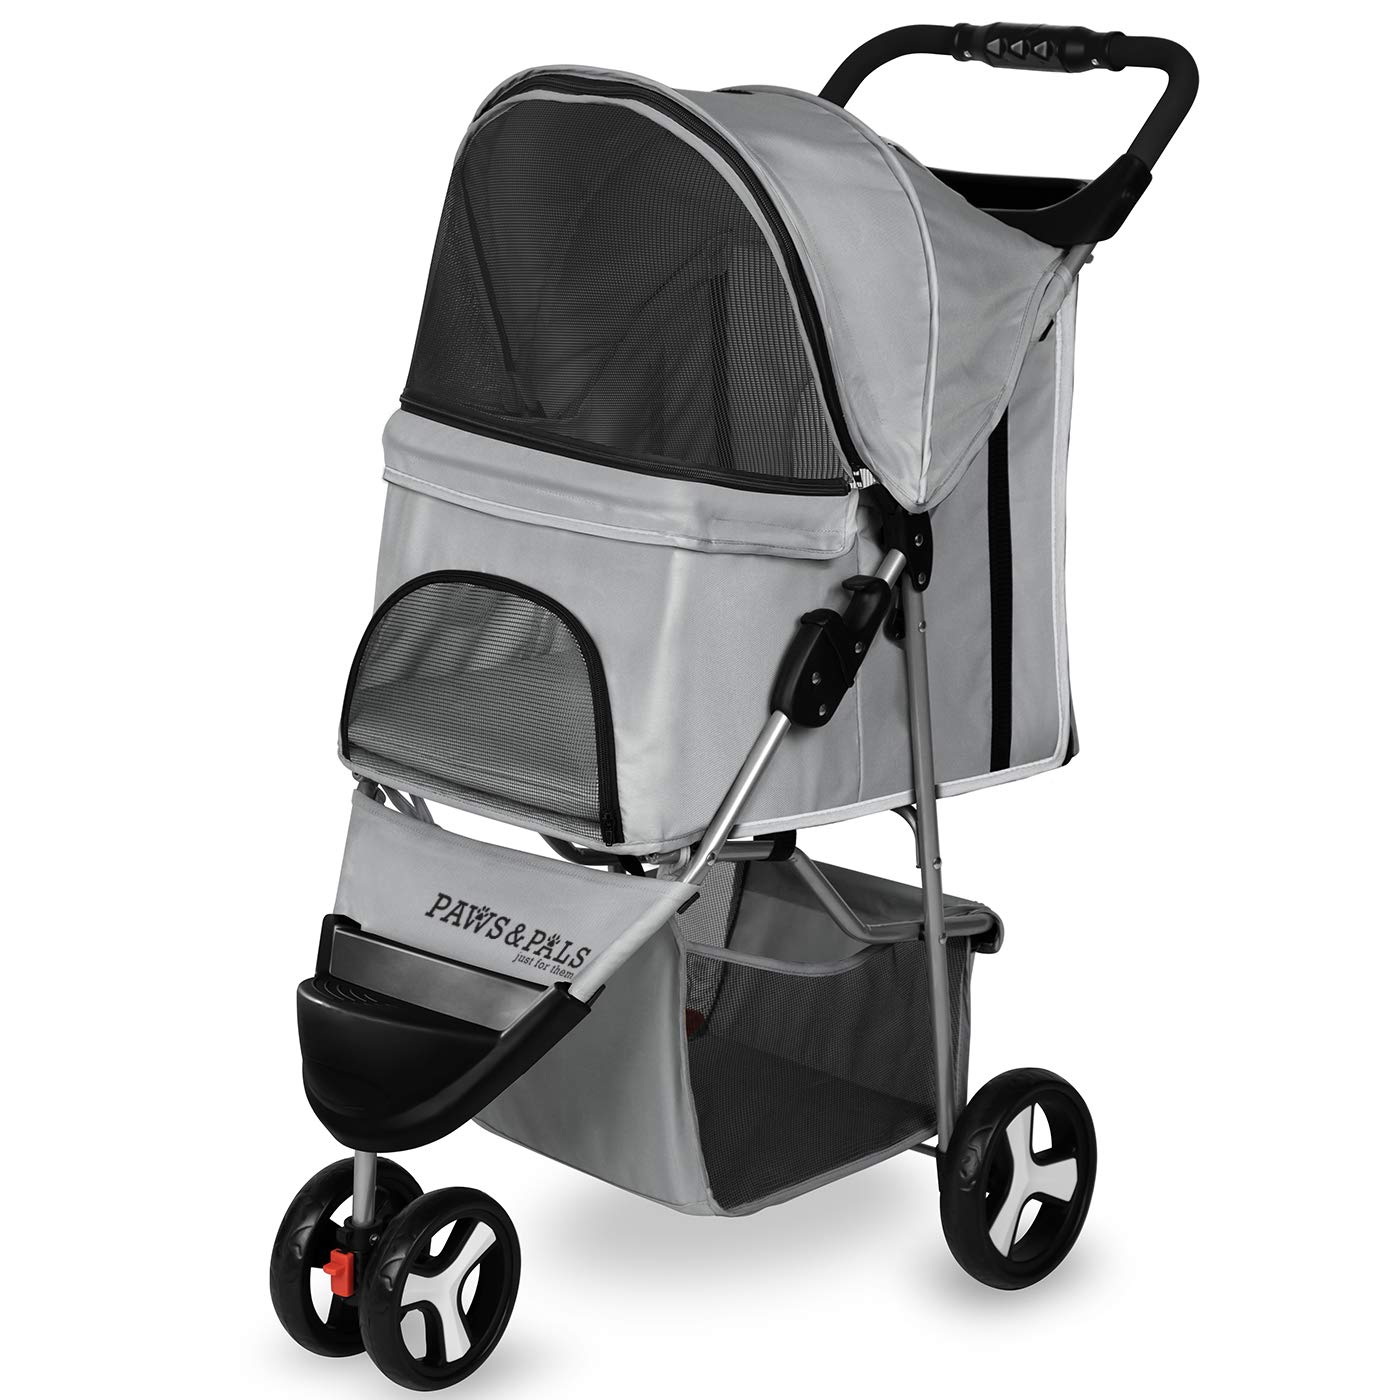 Paws Pals Department store 3 Wheeler Elite Jogger Dog Cat Pet Stroller Al sold out. Easy to